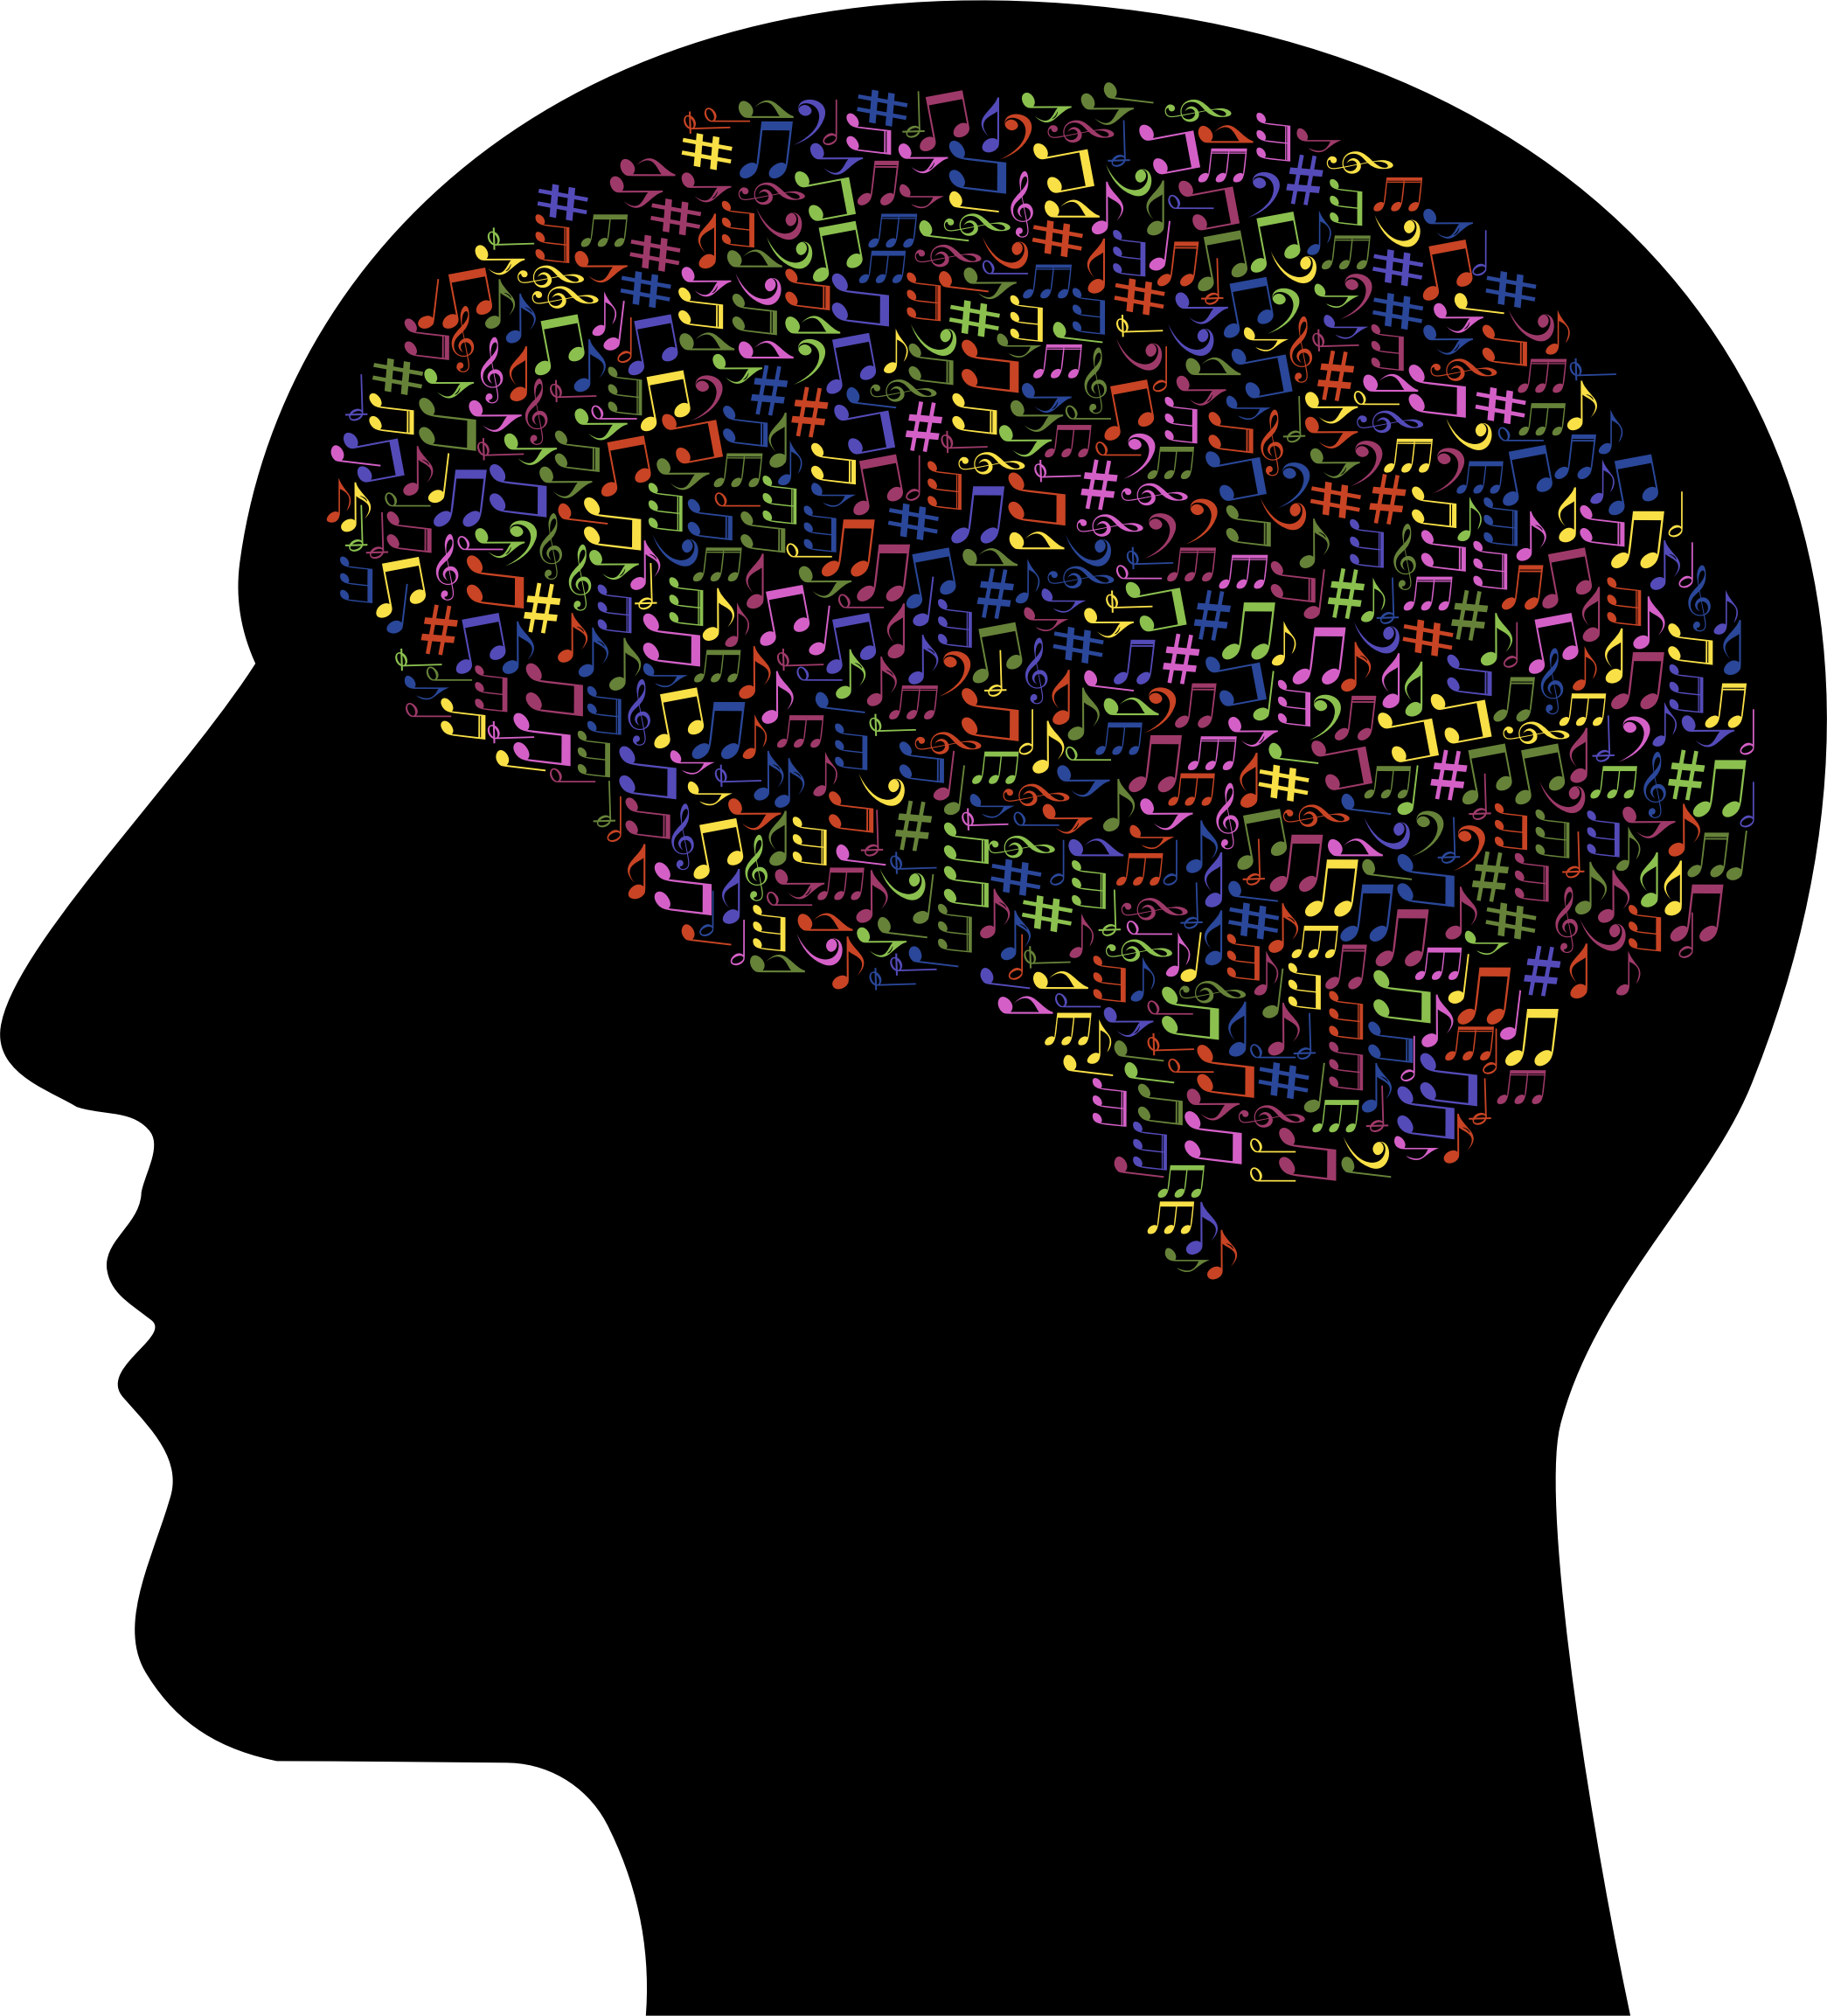 Brain Clipart Music - Brain In Skull Clip Art - Png Download (2090x2306), Png Download